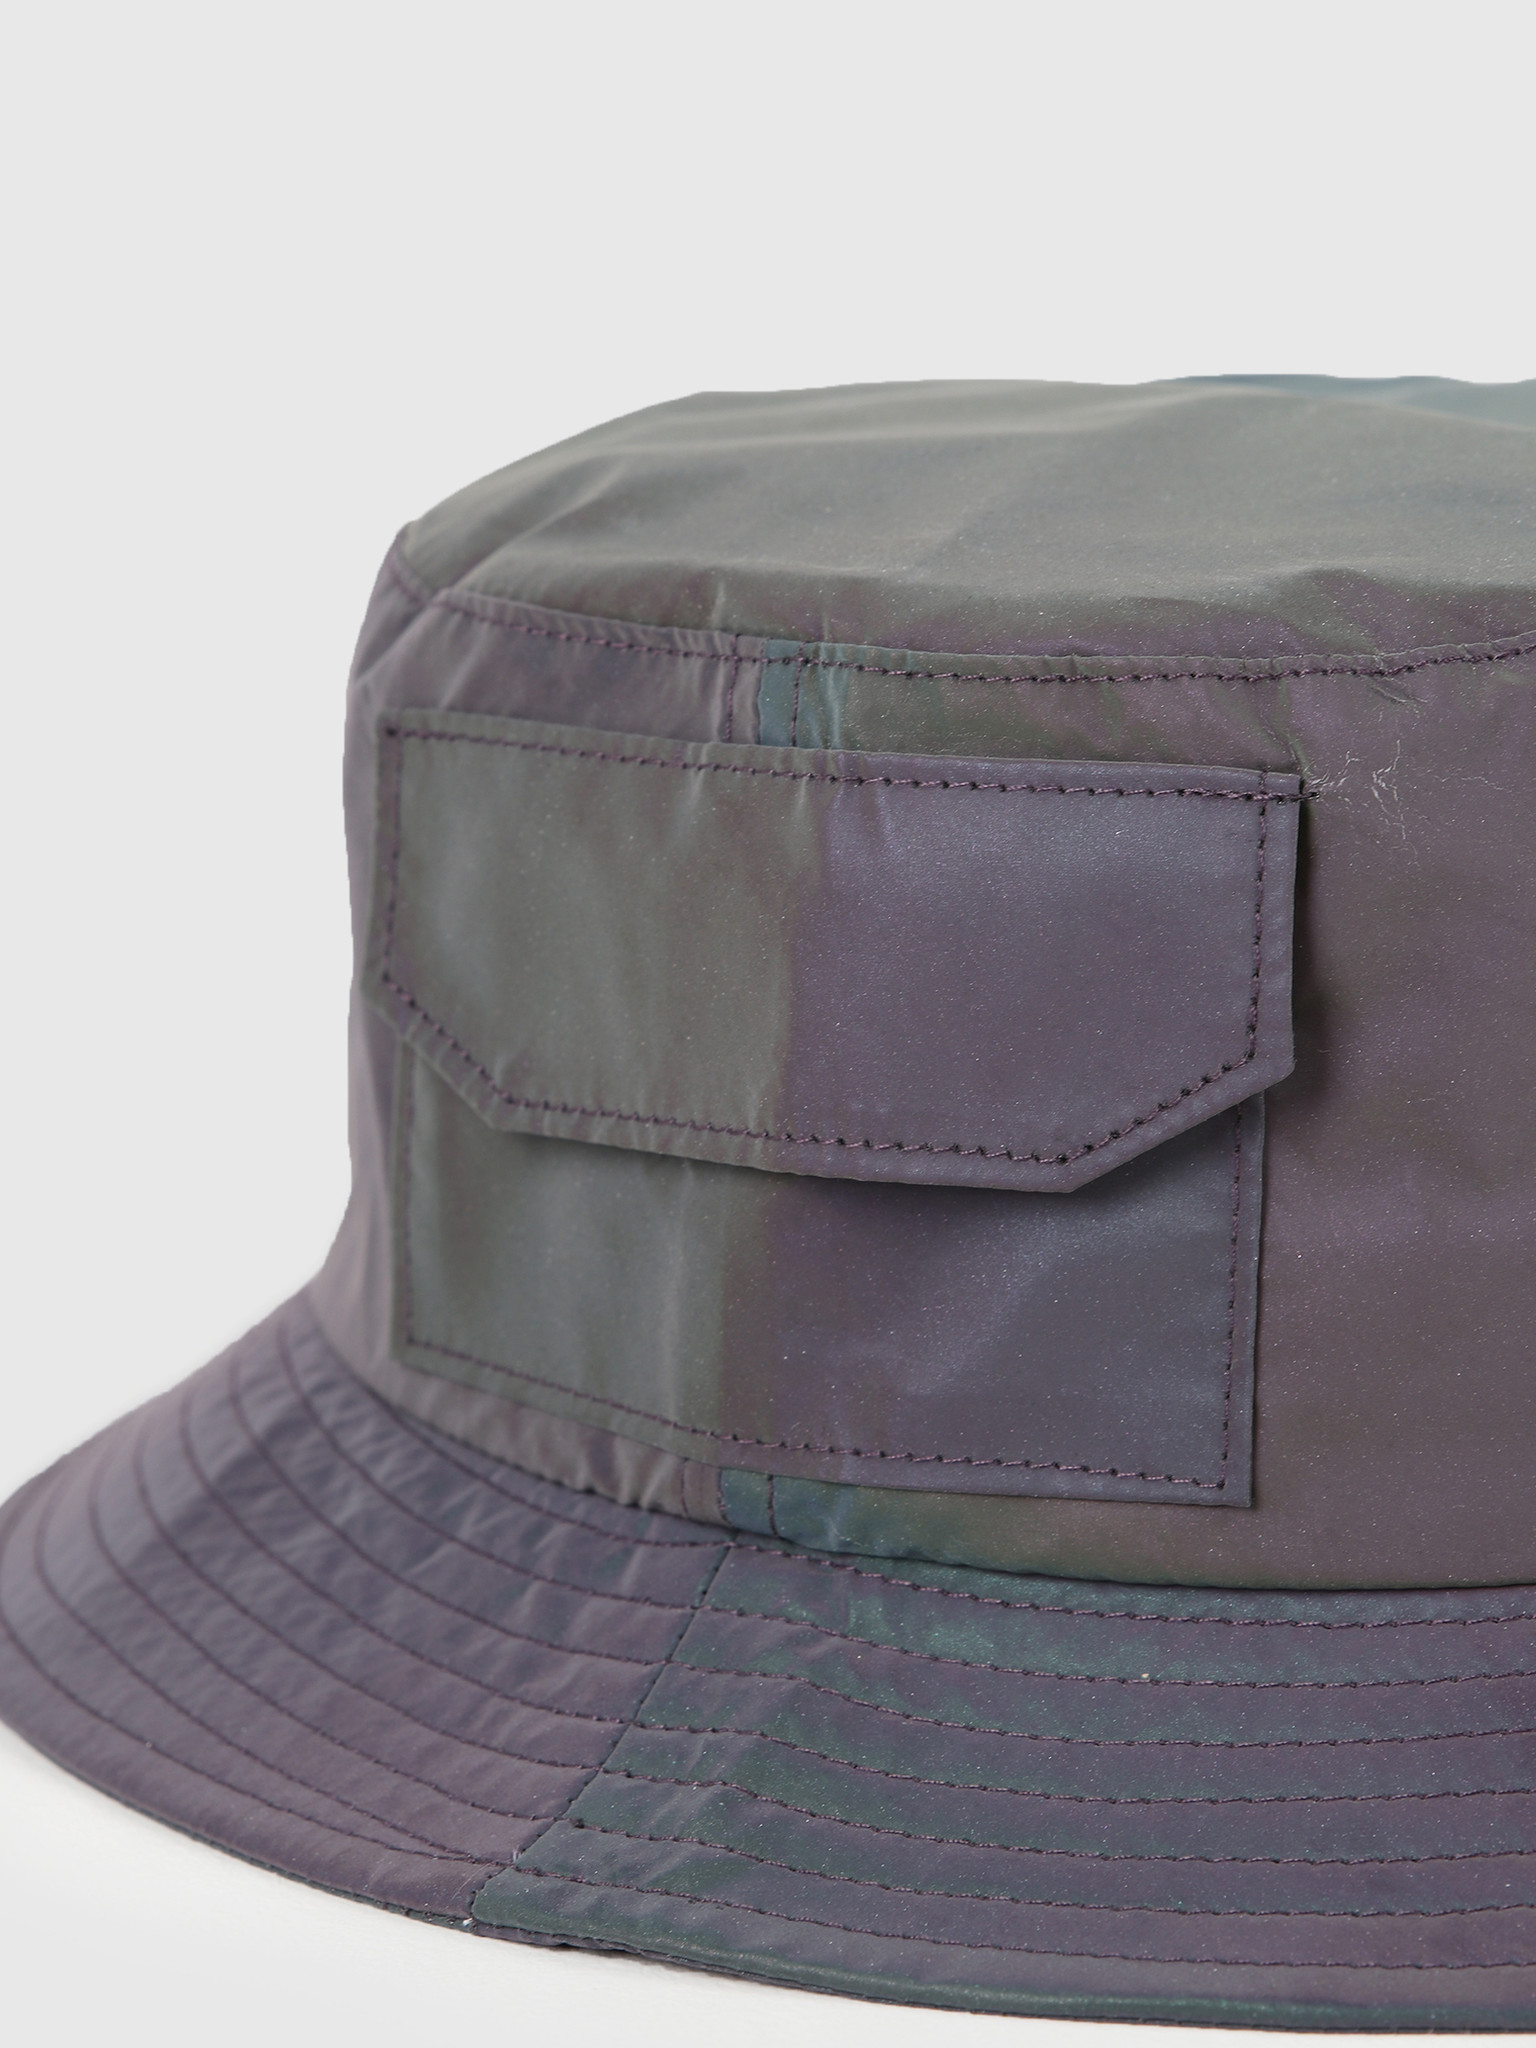 Daily Paper Daily Paper Gezup Purple Green Reflective 19F1AC03-01